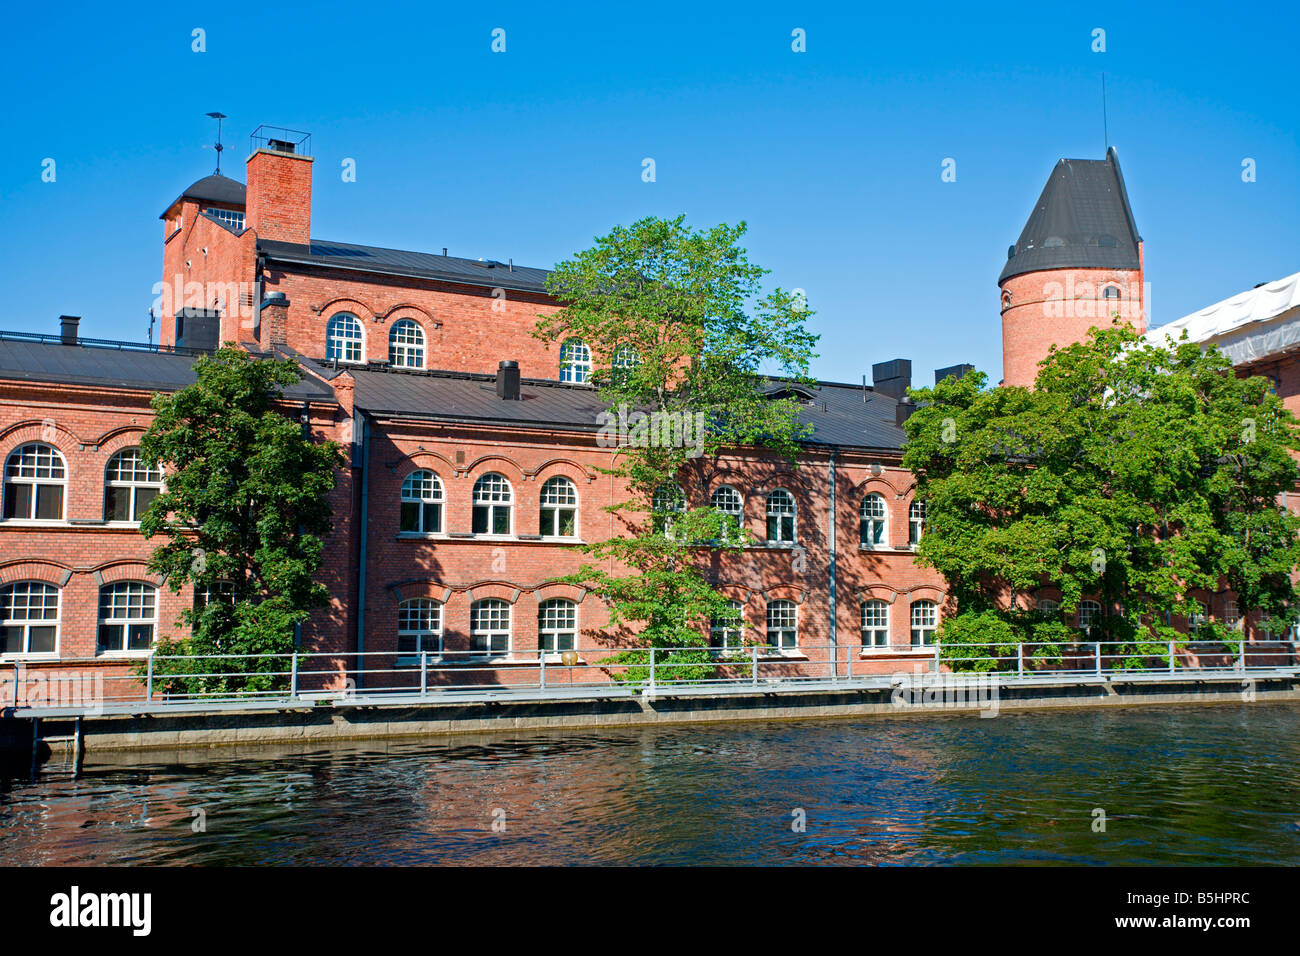 Tampere: Finlayson Factory Old Buildings Stock Photo